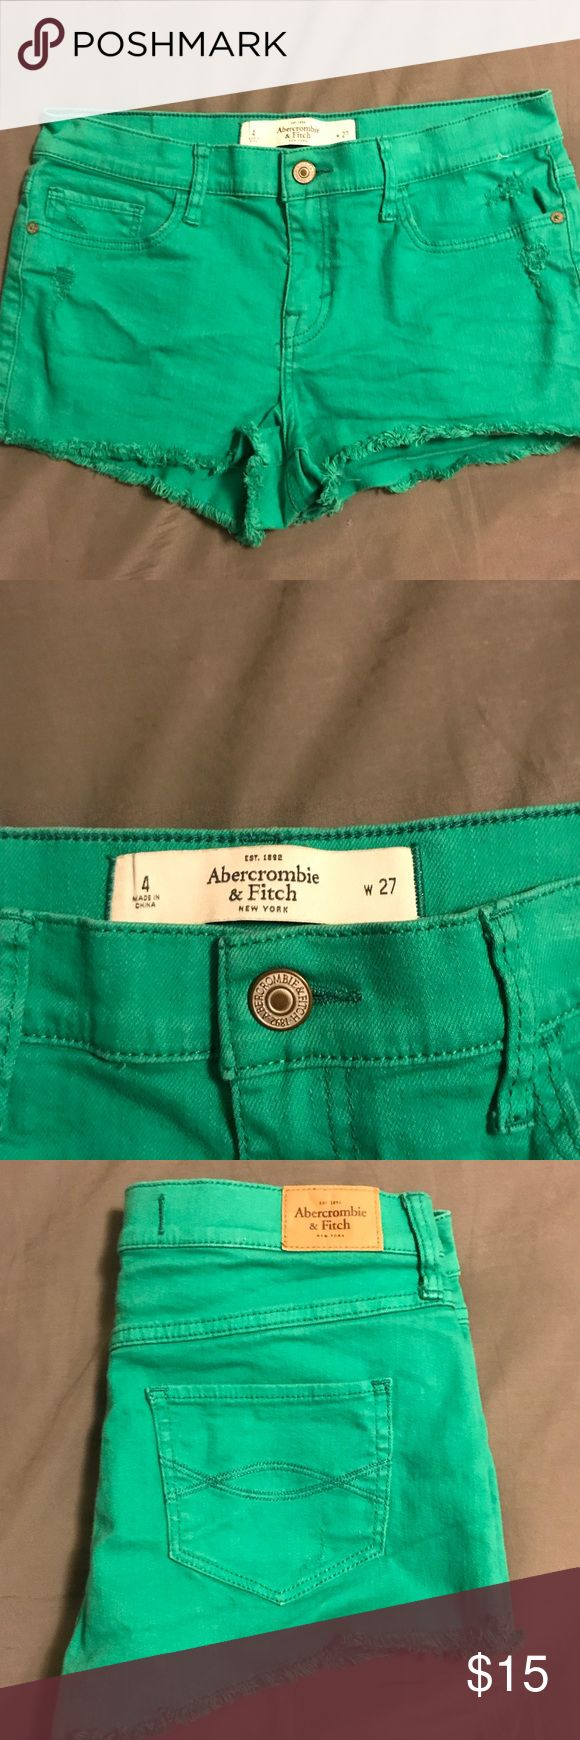 Abercrombie and Fitch shorts Green Abercrombie and Fitch shorts  Just in time for St. Patrick's Day  Great condition no stains or defects Abercrombie & Fitch Shorts Jean Shorts